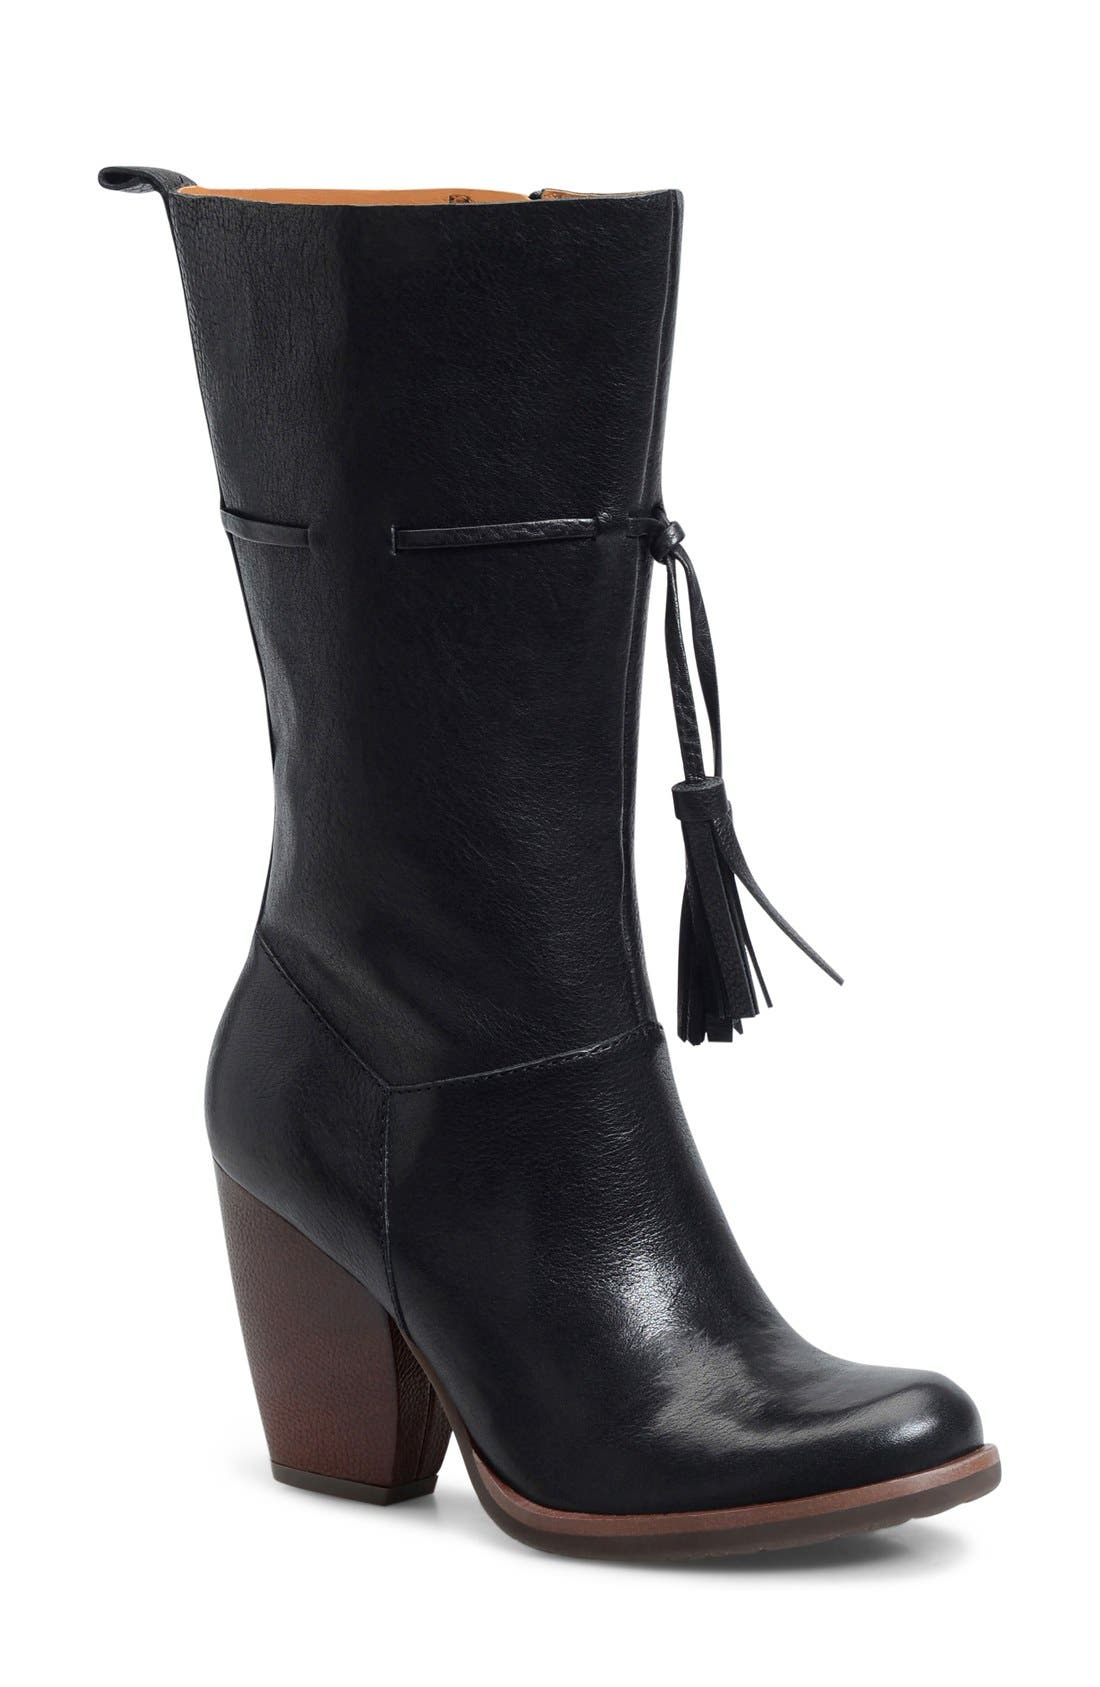 Alternate Image 1 Selected - Kork-Ease® 'Umbriel' Boot (Women)